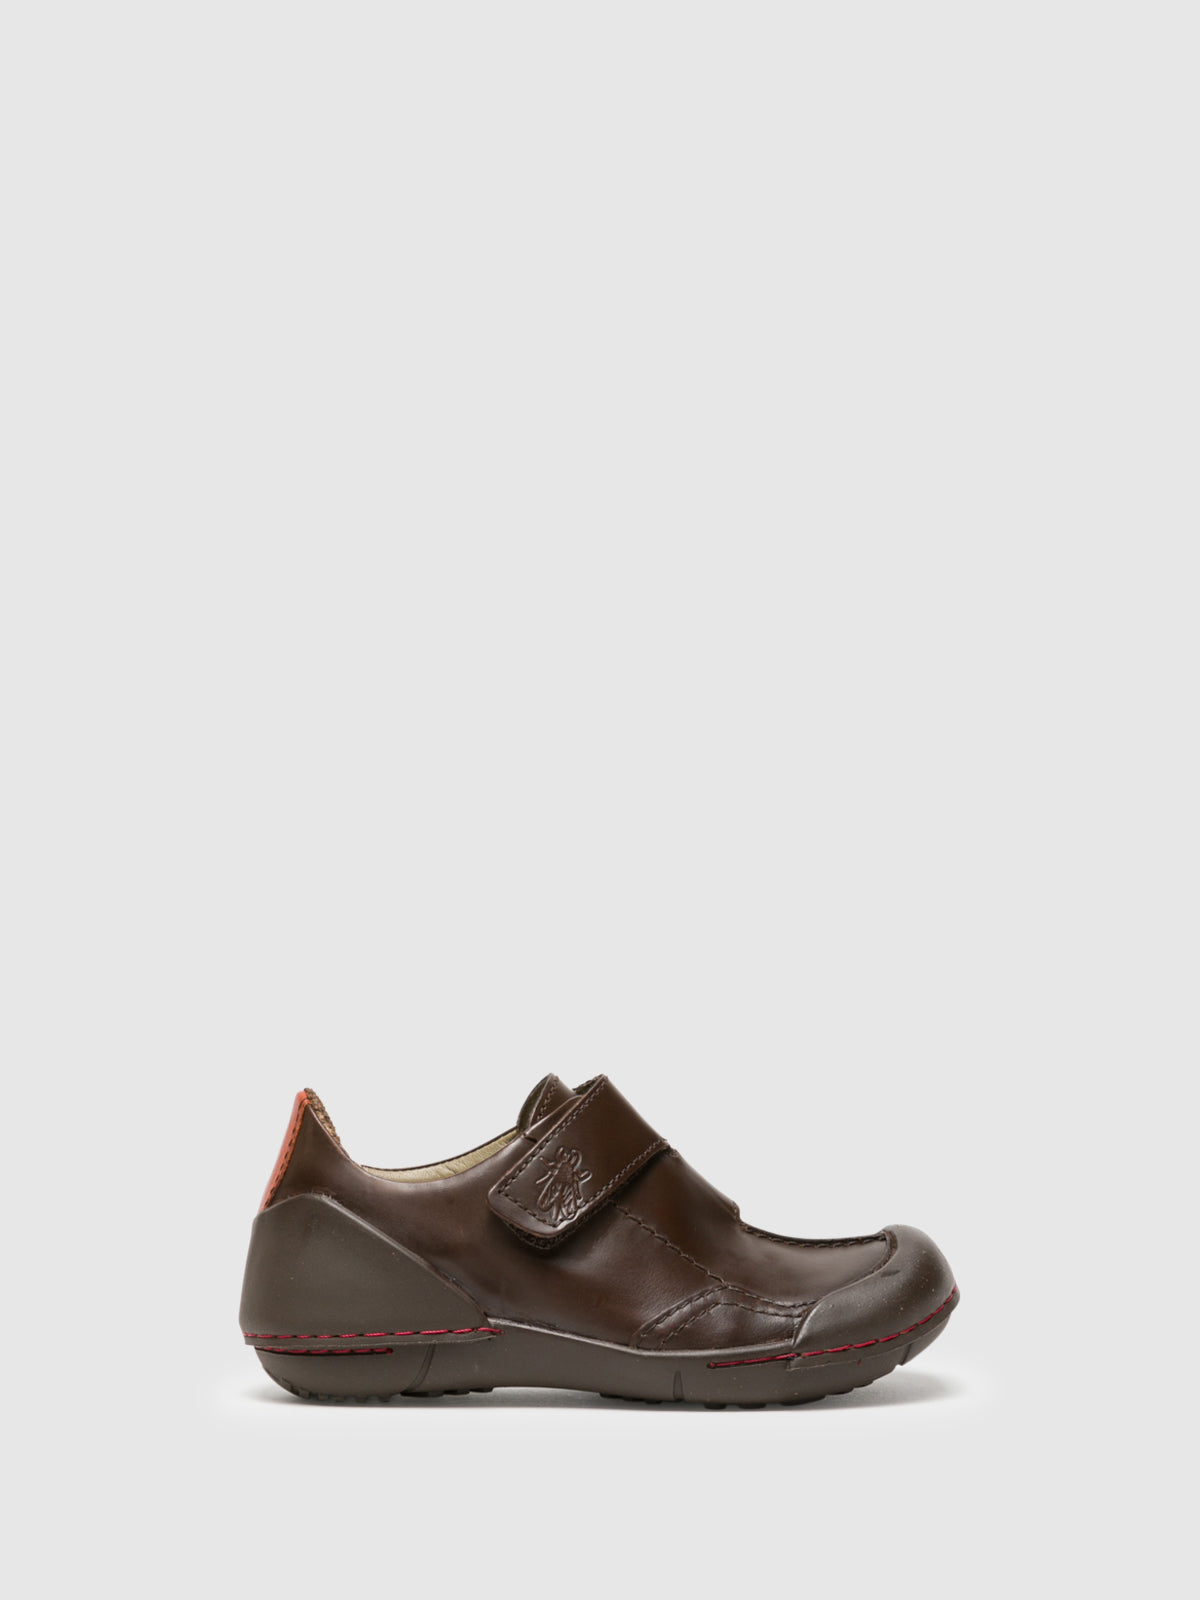 Fly London Brown Round Toe Shoes